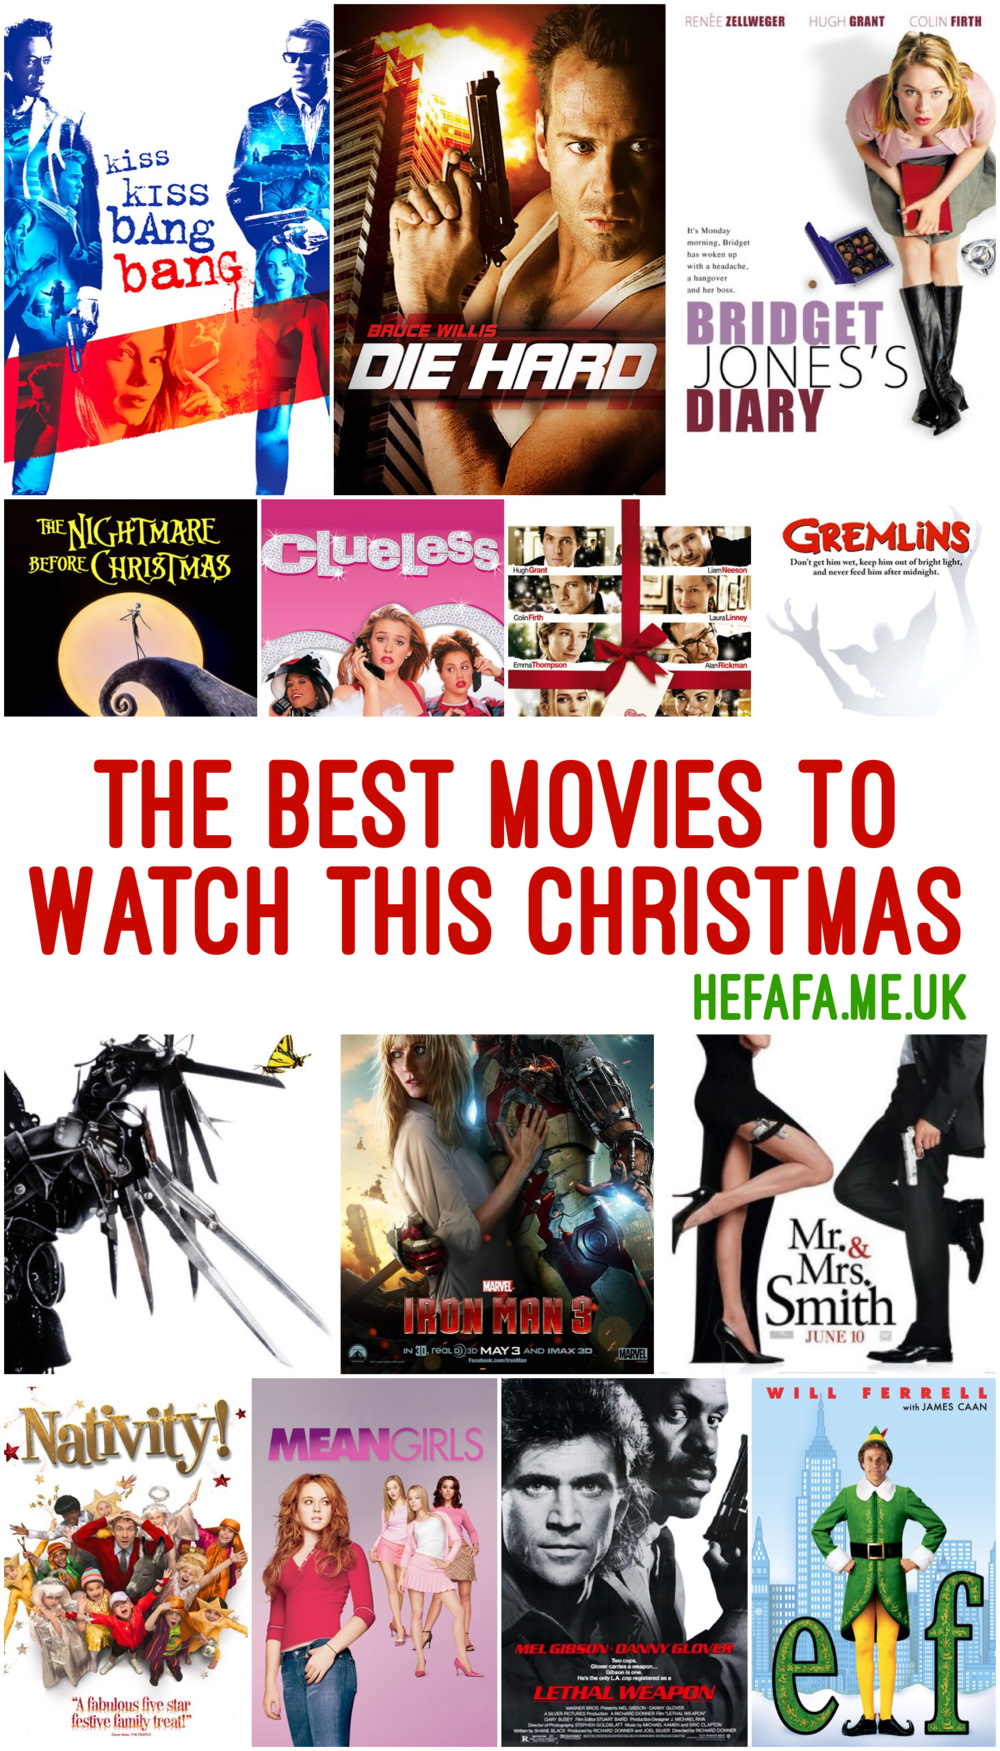 The Best Movies to Watch this Christmas - hefafa.me.uk